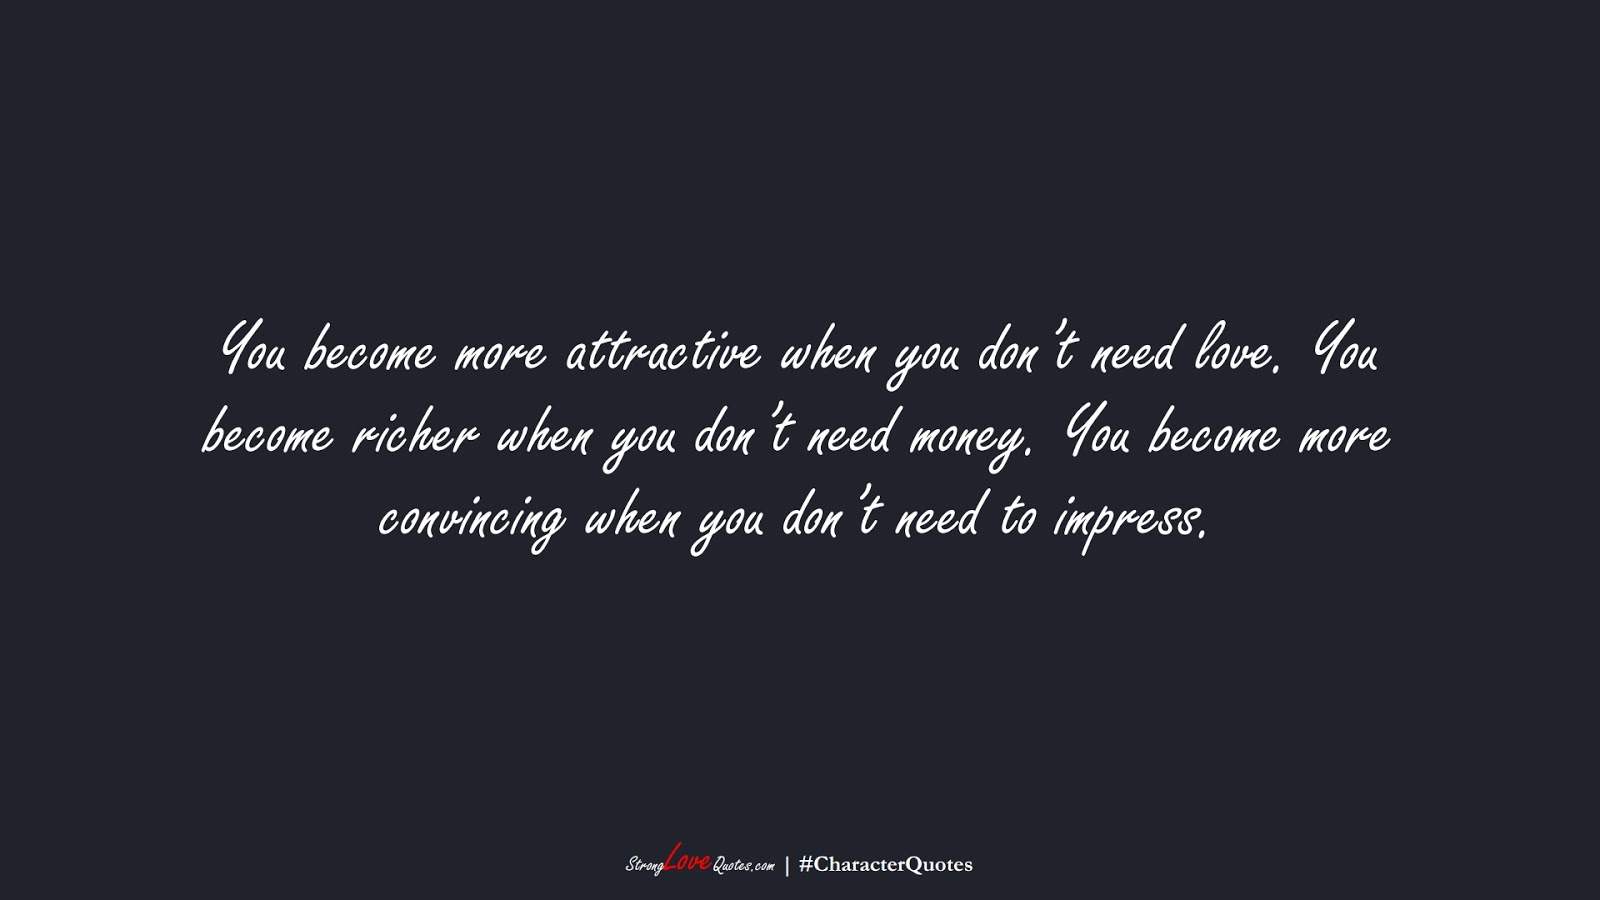 You become more attractive when you don't need love. You become richer when you don't need money. You become more convincing when you don't need to impress.FALSE